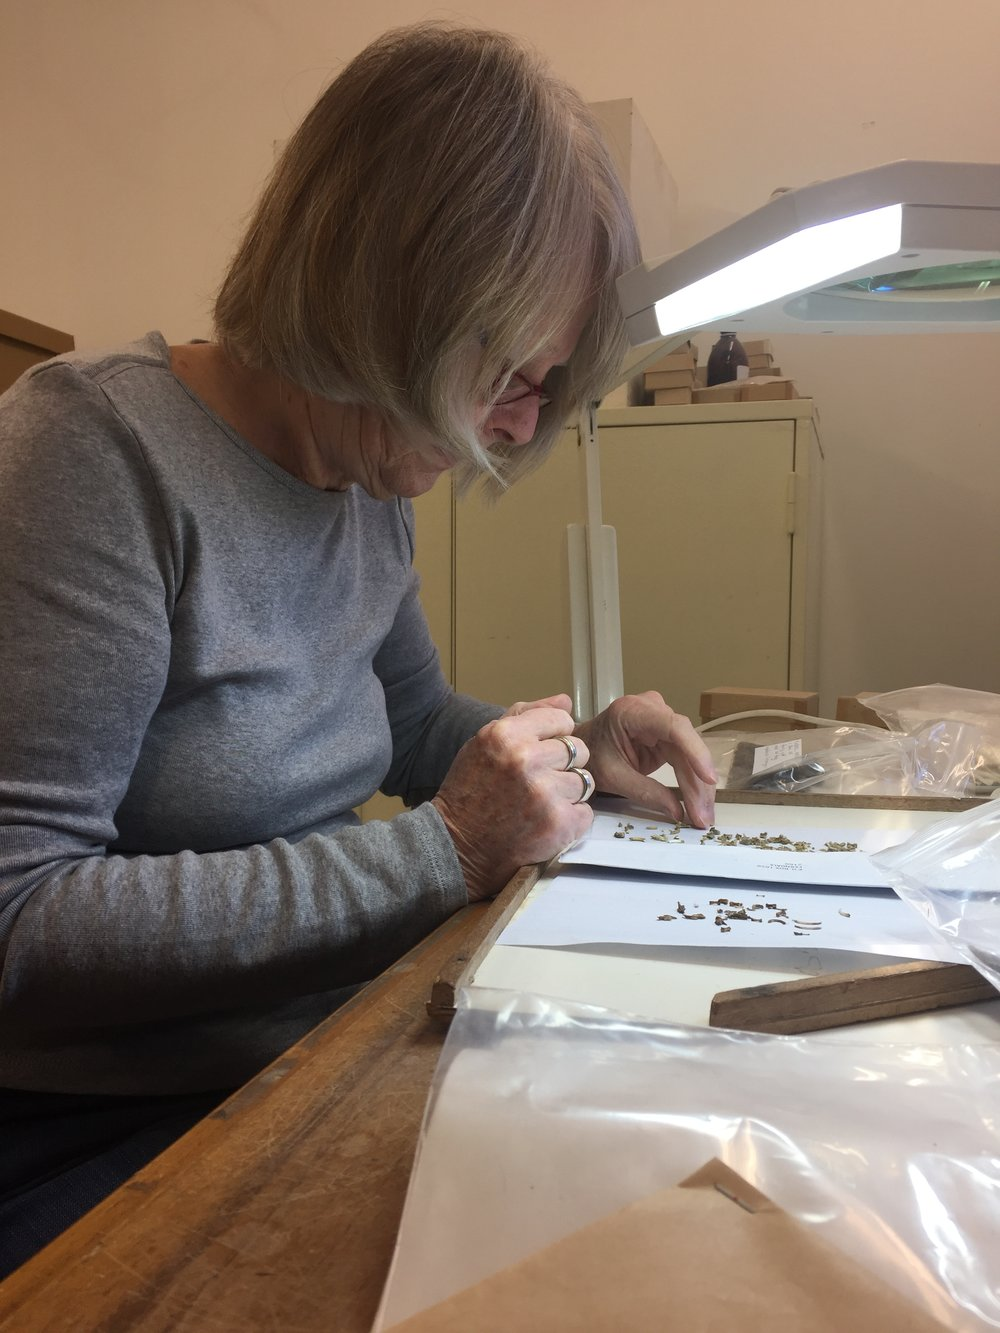 Magaret Avery examines some very small rodent bones and counts the number of individuals between two related samples using left and right-sided bones